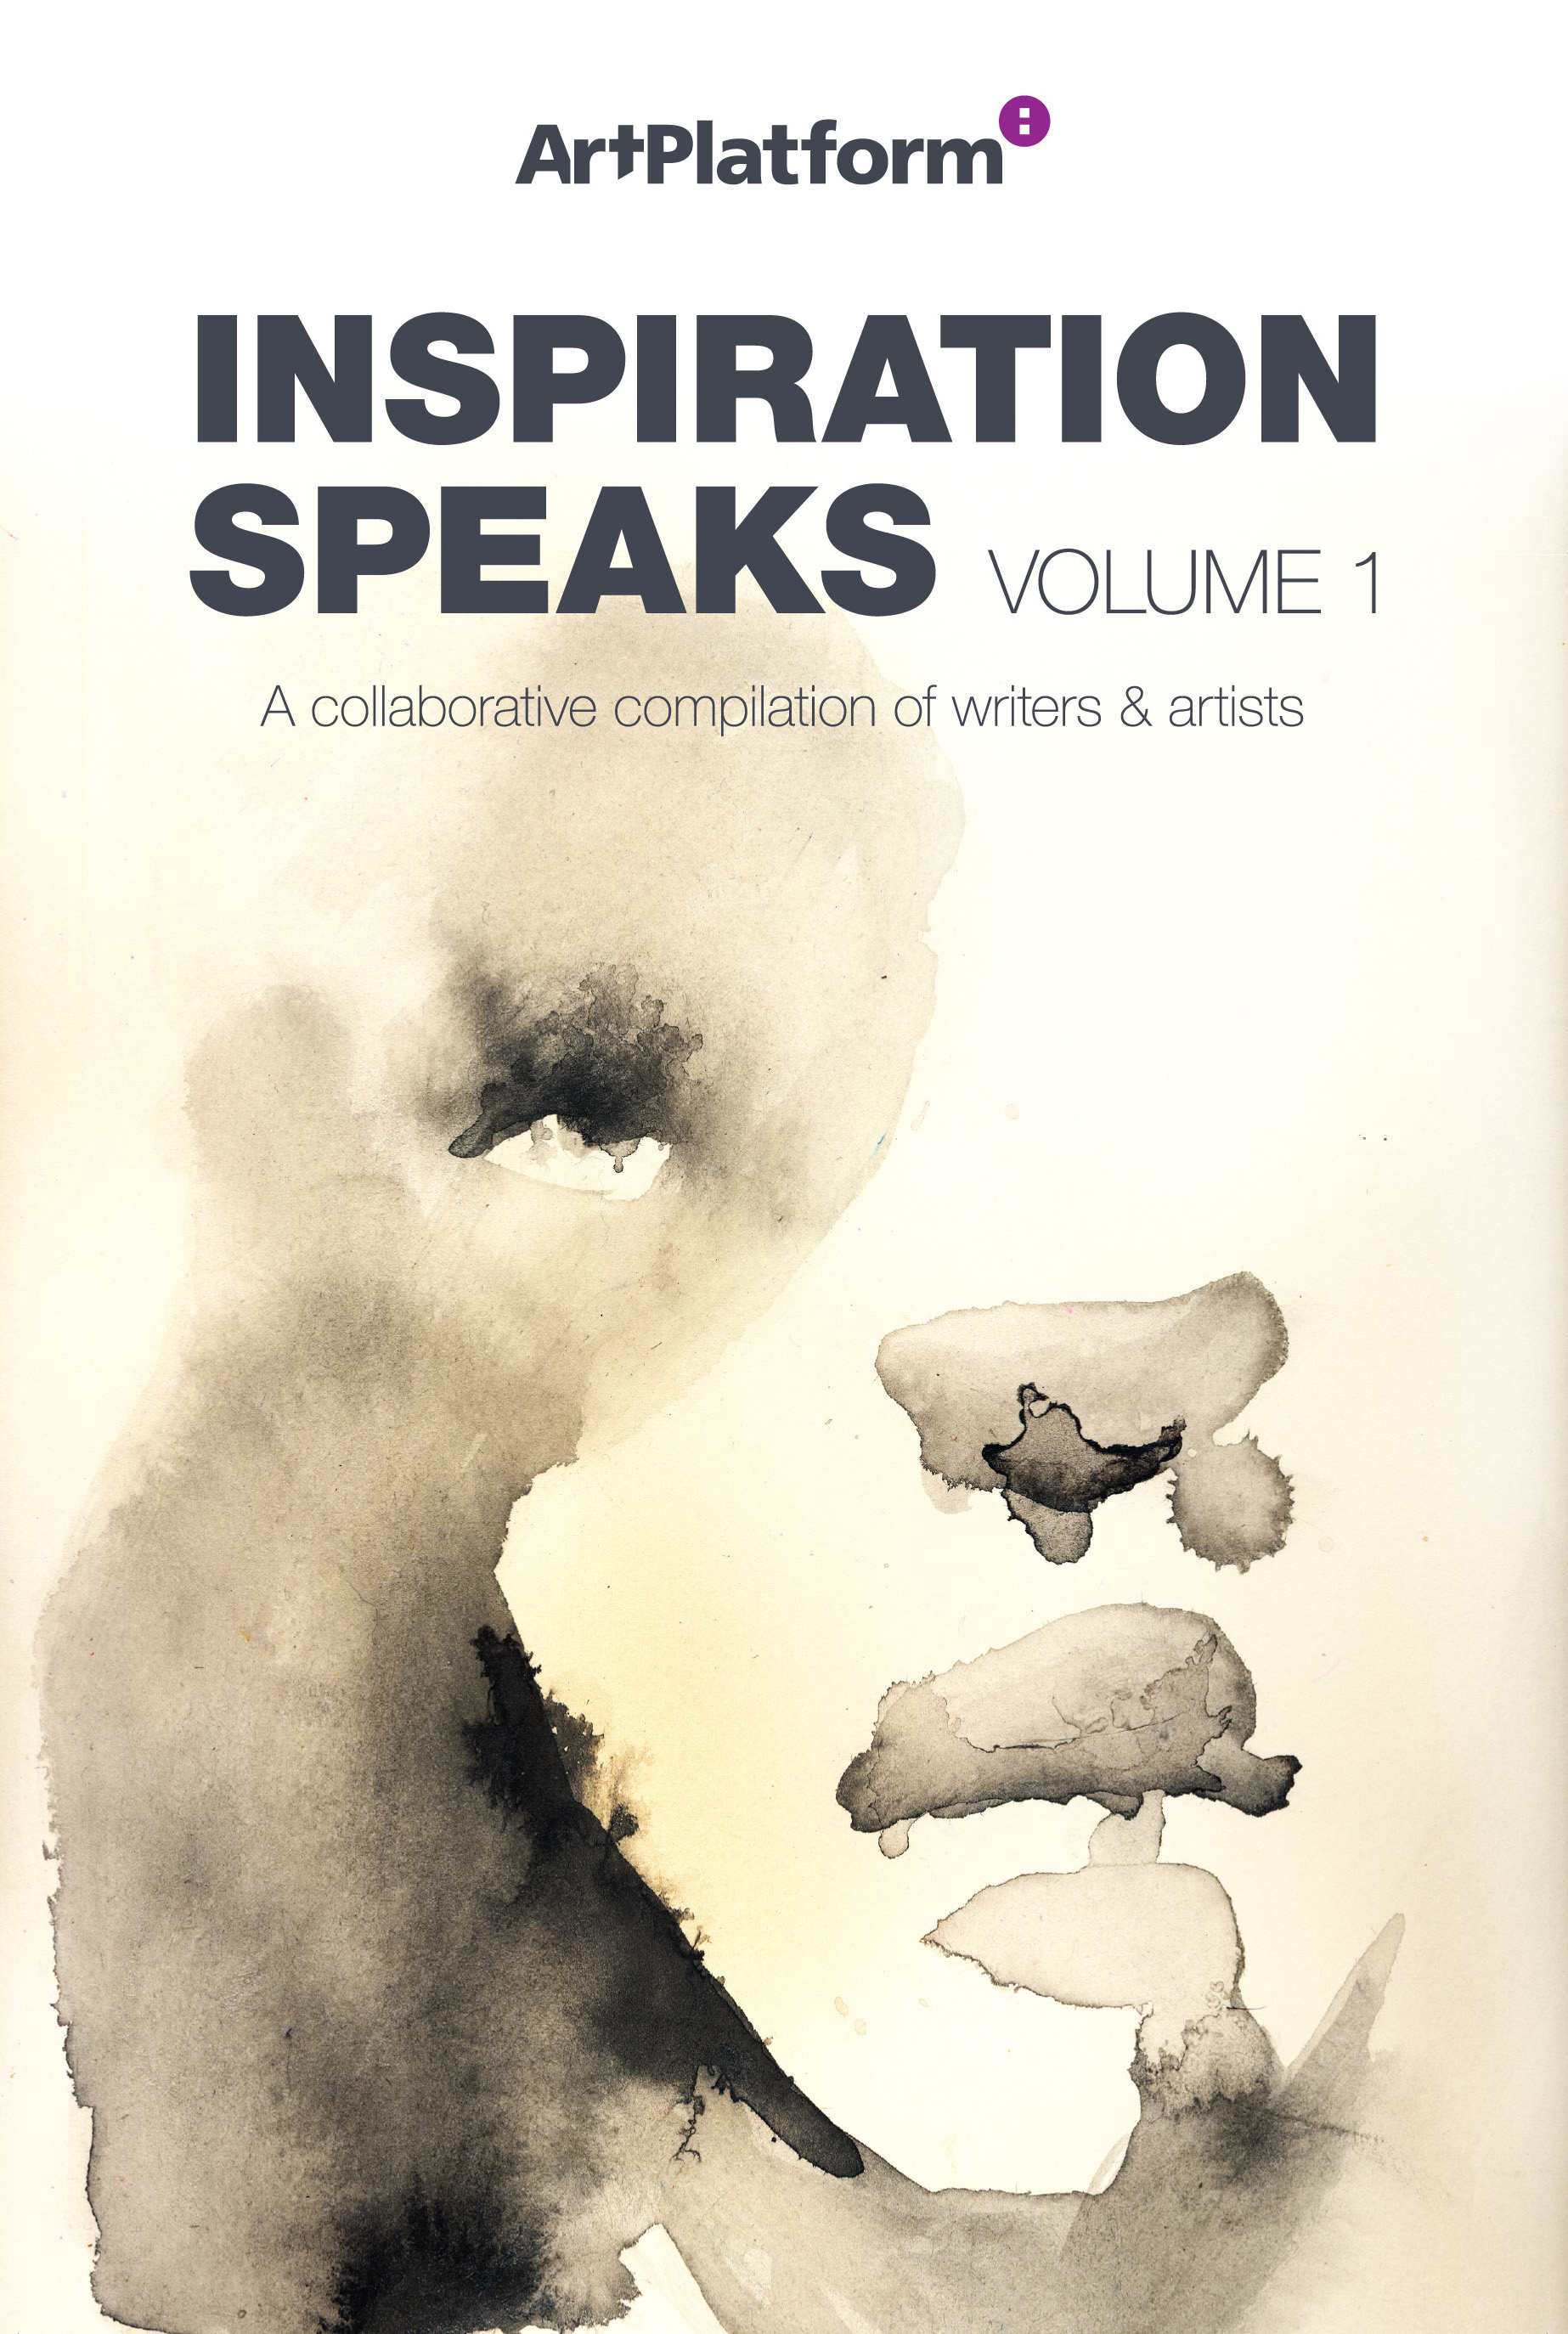 Book Cover Inspiration Jobs ~ Inspiration speaks book cover ⋆ winter goose publishing